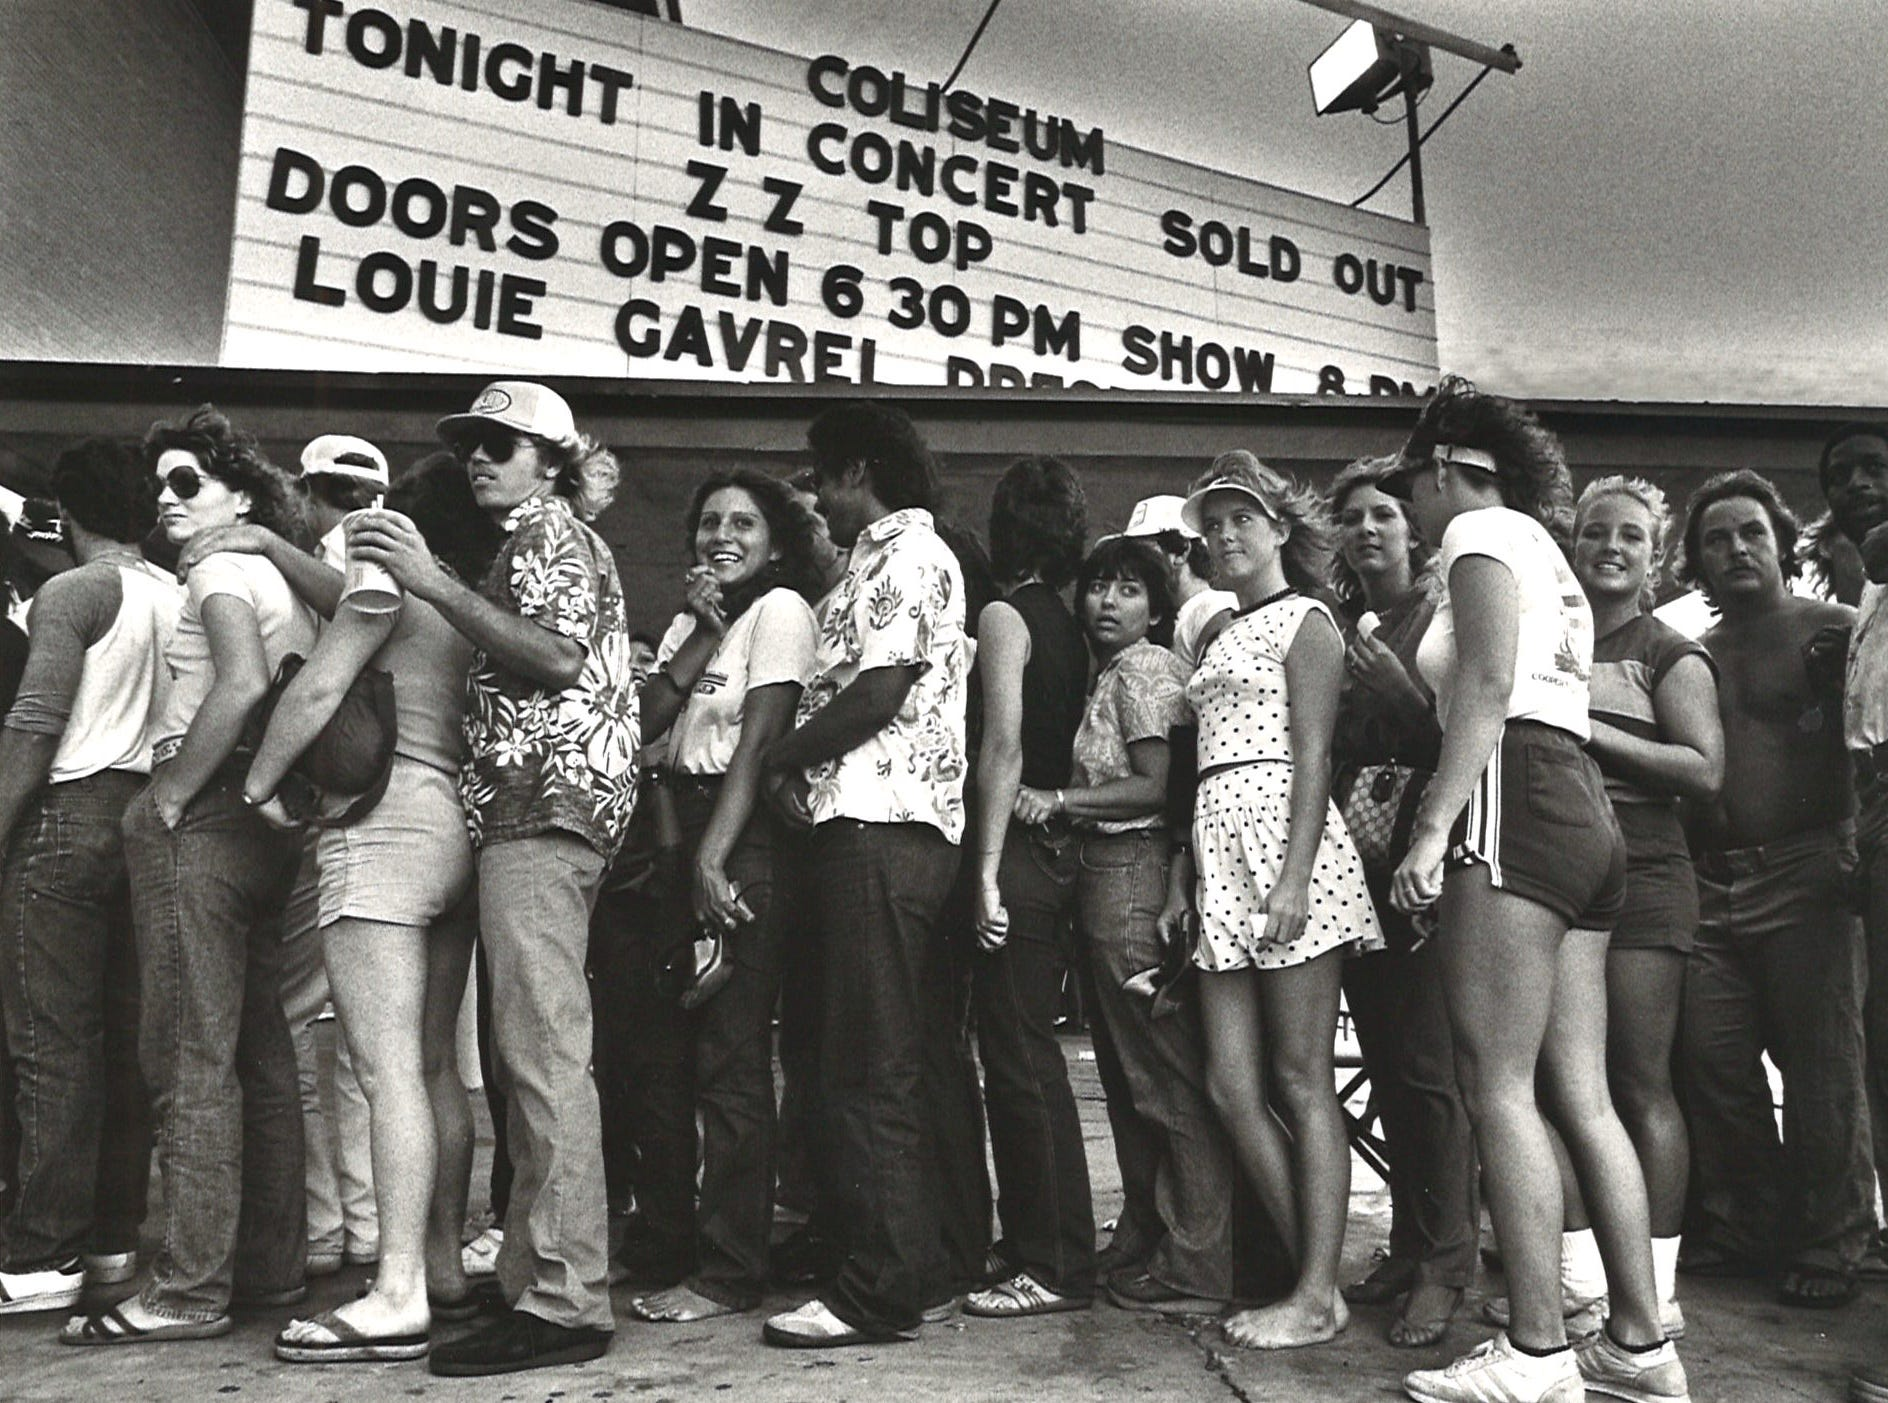 The crowd waits in line for the ZZ Top concert at Memorial Coliseum in Corpus Christi on Oct. 4, 1983.